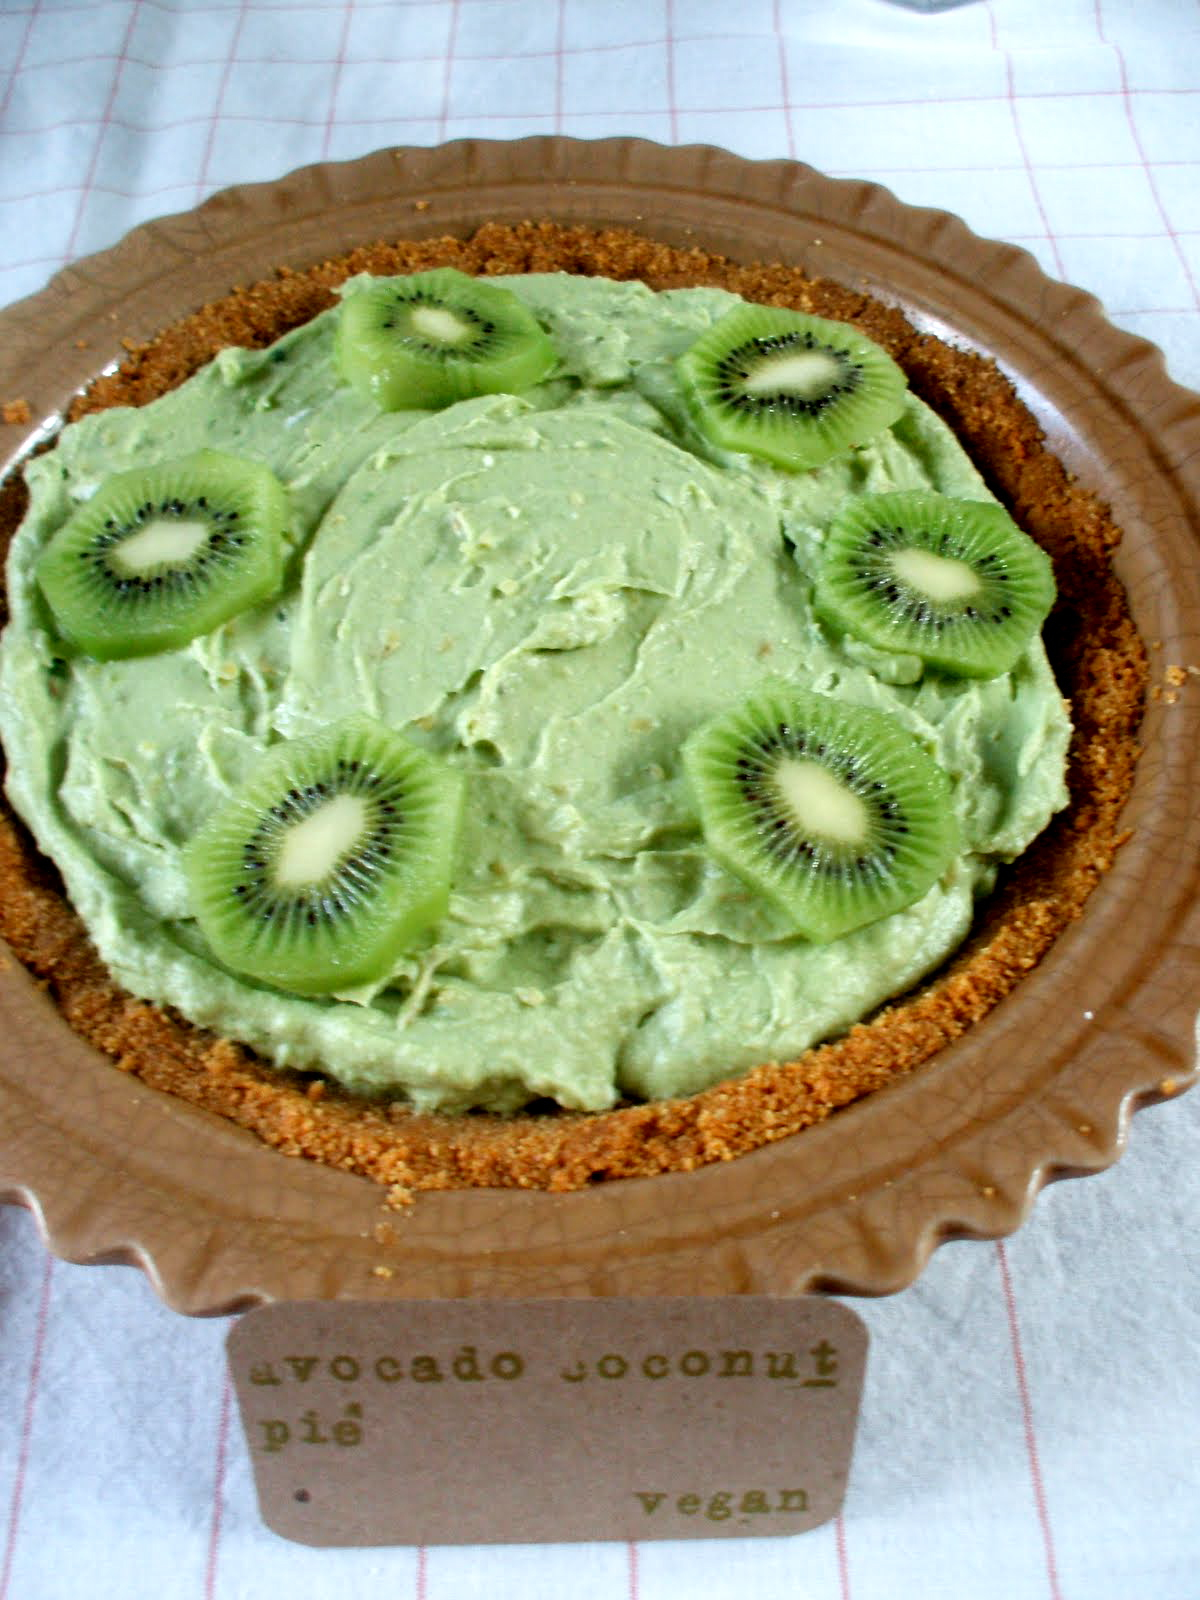 Avocado-Coconut Pie